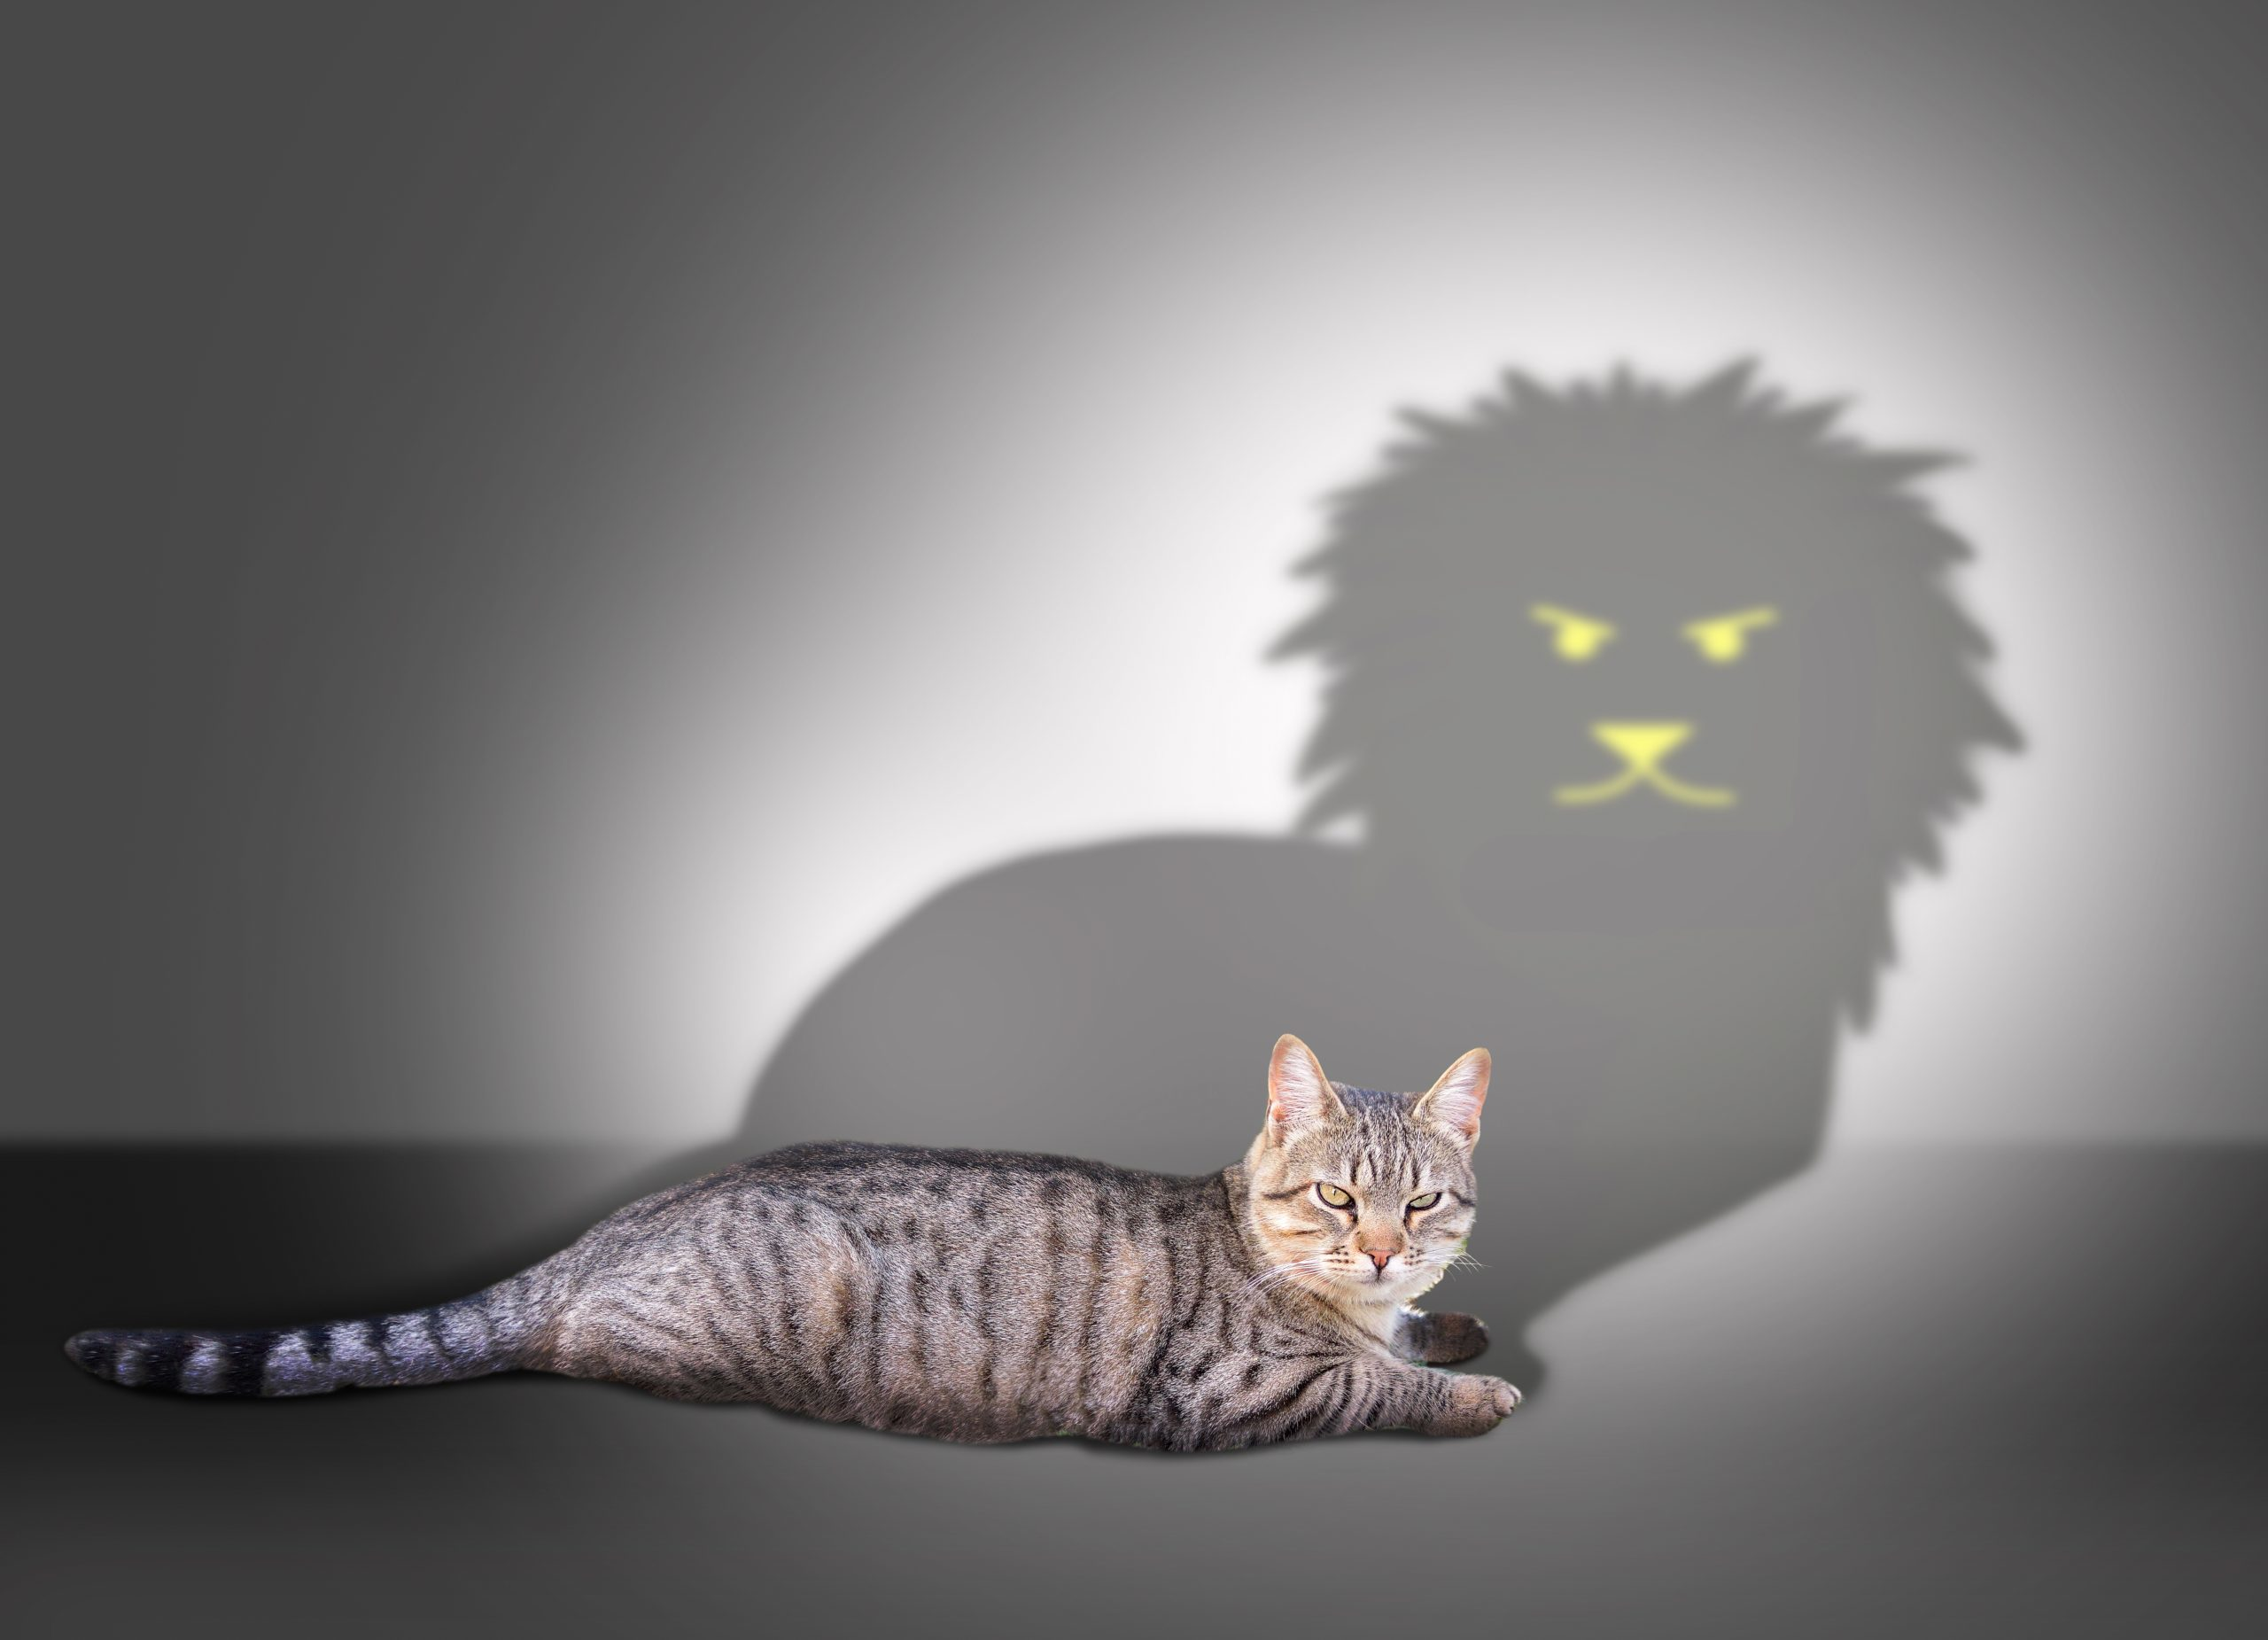 tabby cat lying down and casting a shadow of a lion on the wall